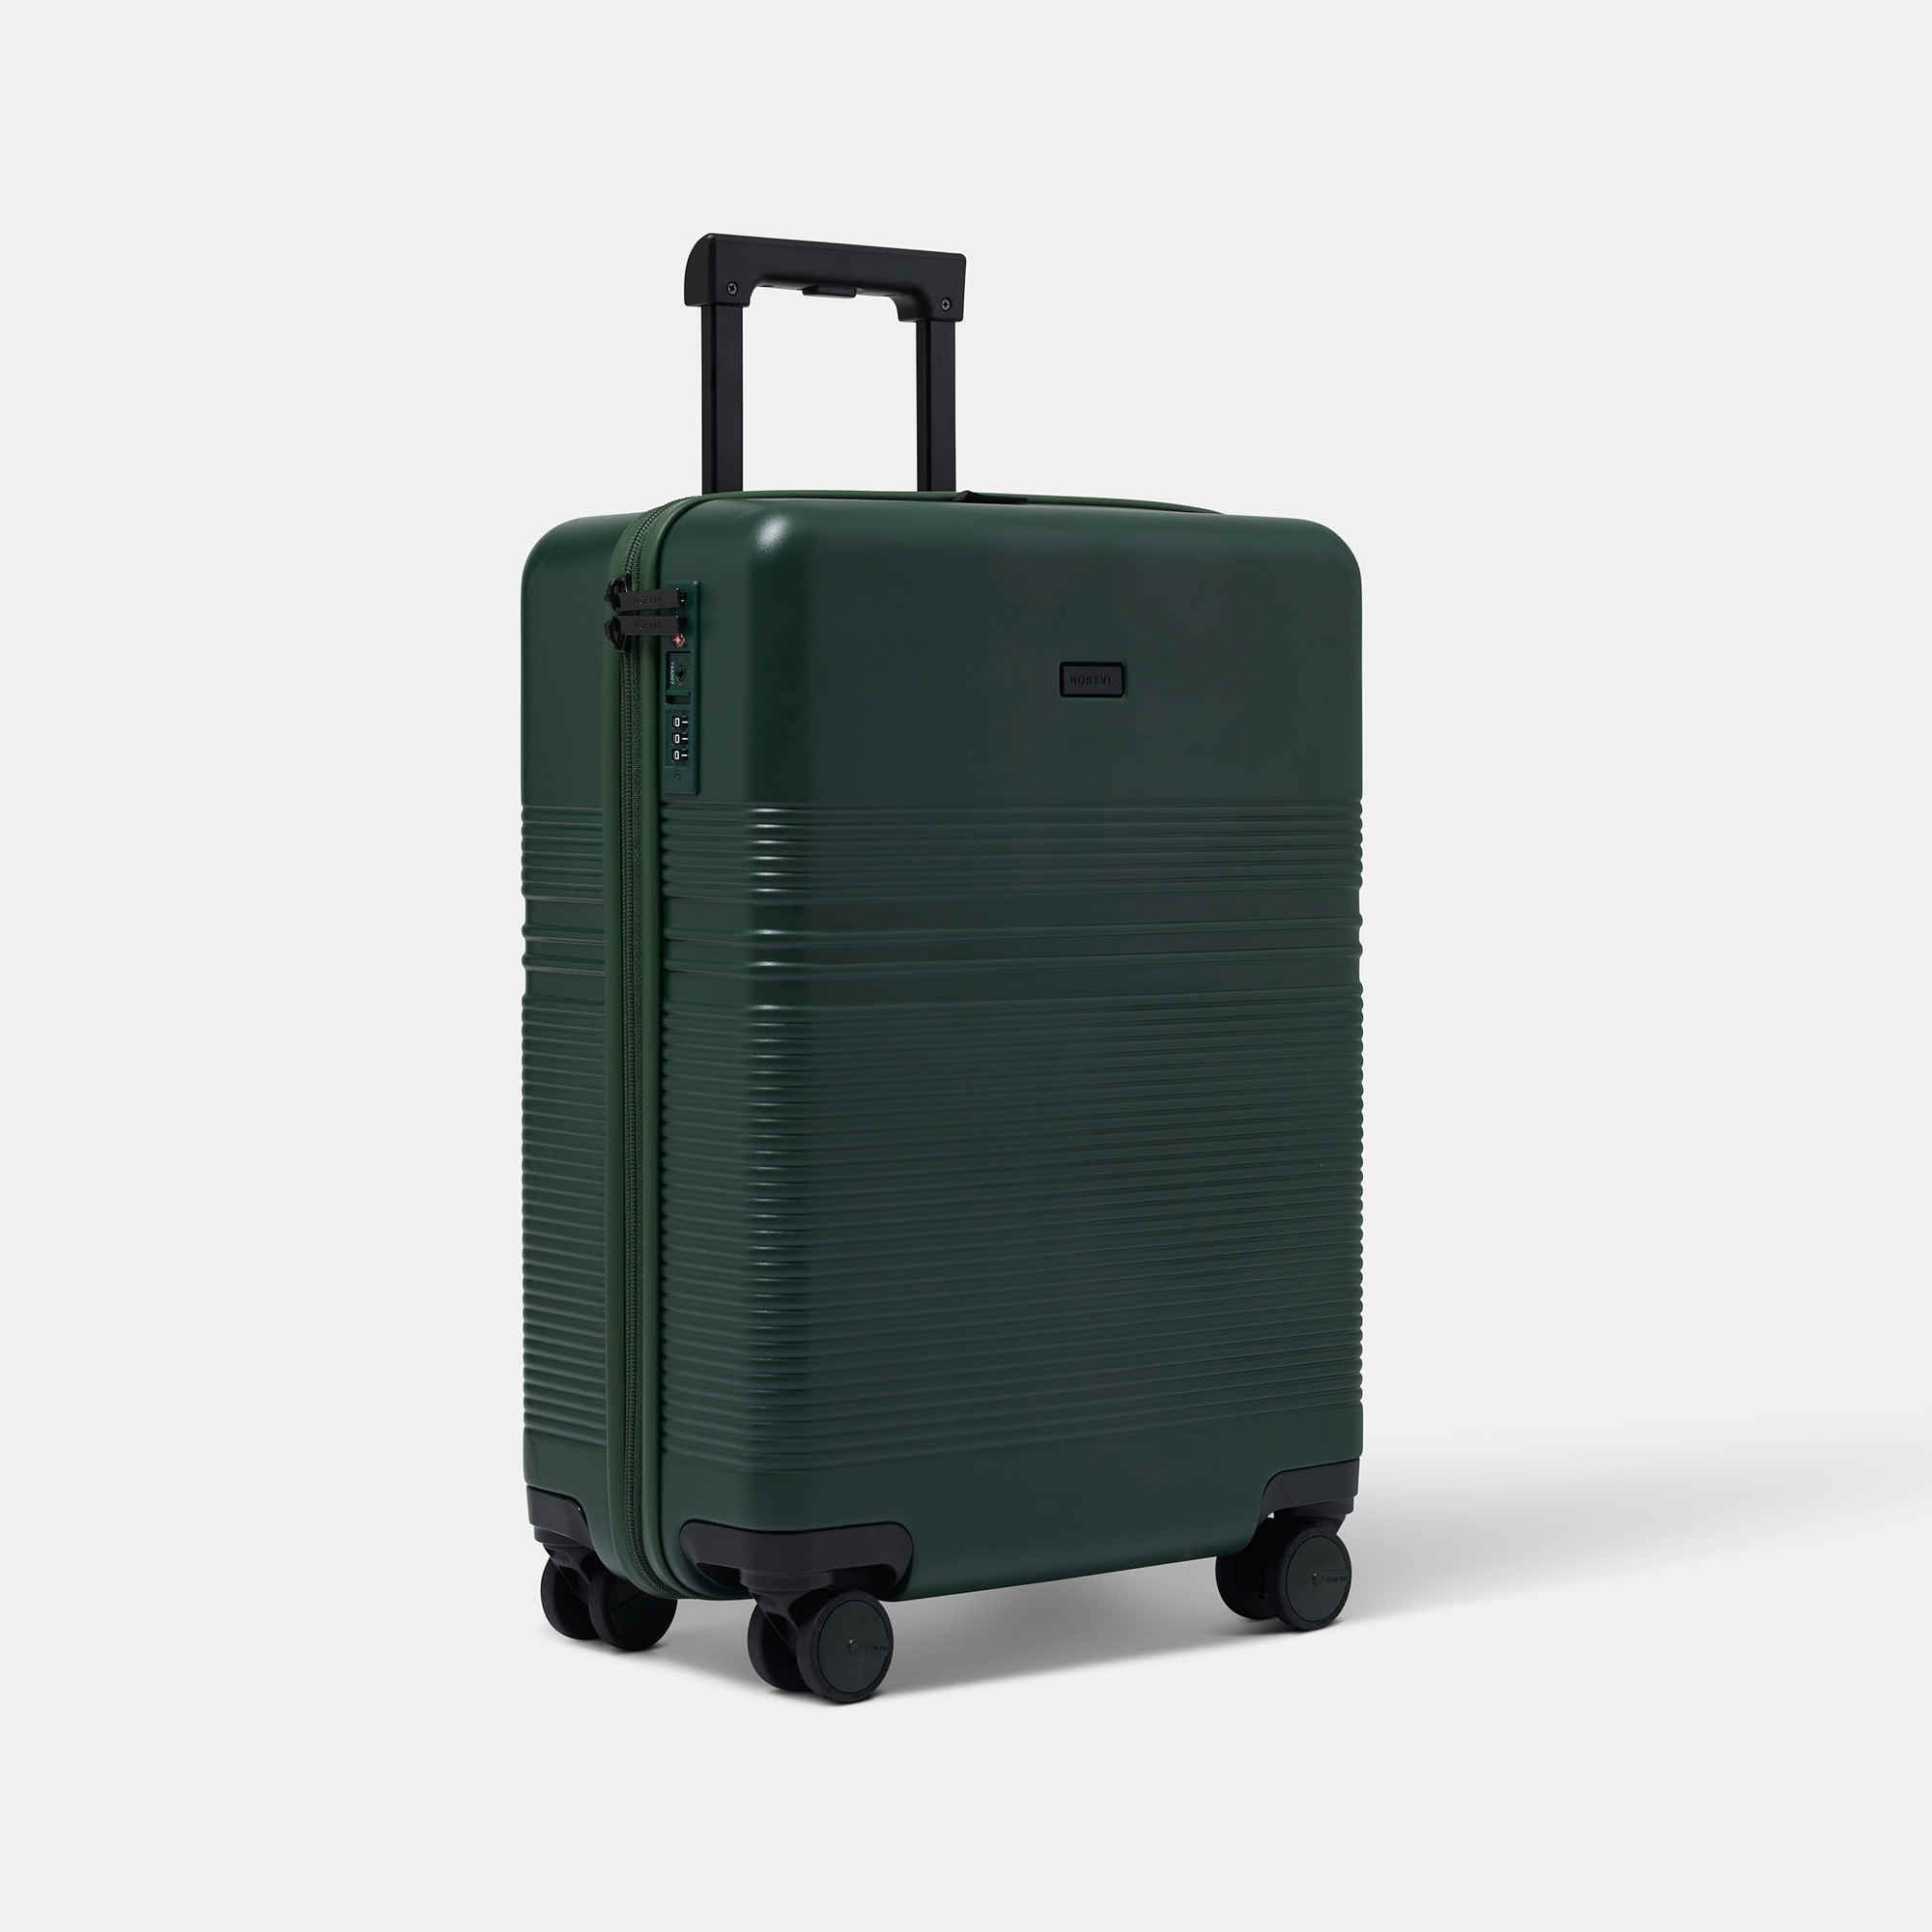 NORTVI sustainable design suitcase green made of durable material.